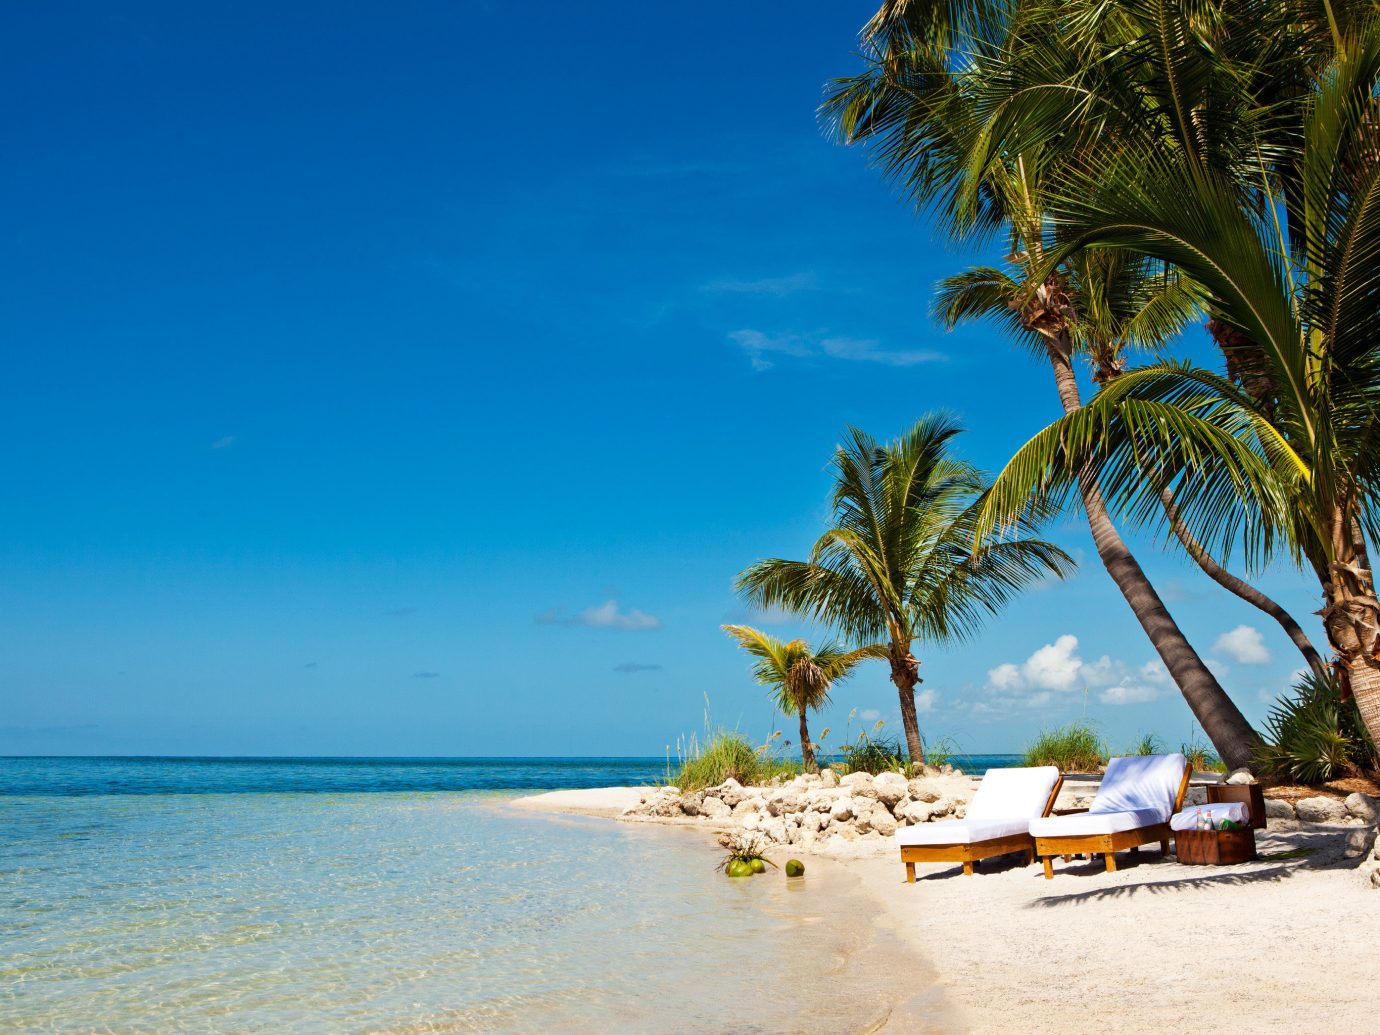 Beach Beachfront Hotels Island Outdoors Resort Romance Romantic Scenic views Secret Getaways Trip Ideas Waterfront sky outdoor water tree body of water Sea shore Ocean caribbean vacation Nature Coast tropics palm palm family arecales bay cape sand Lagoon sandy lined day